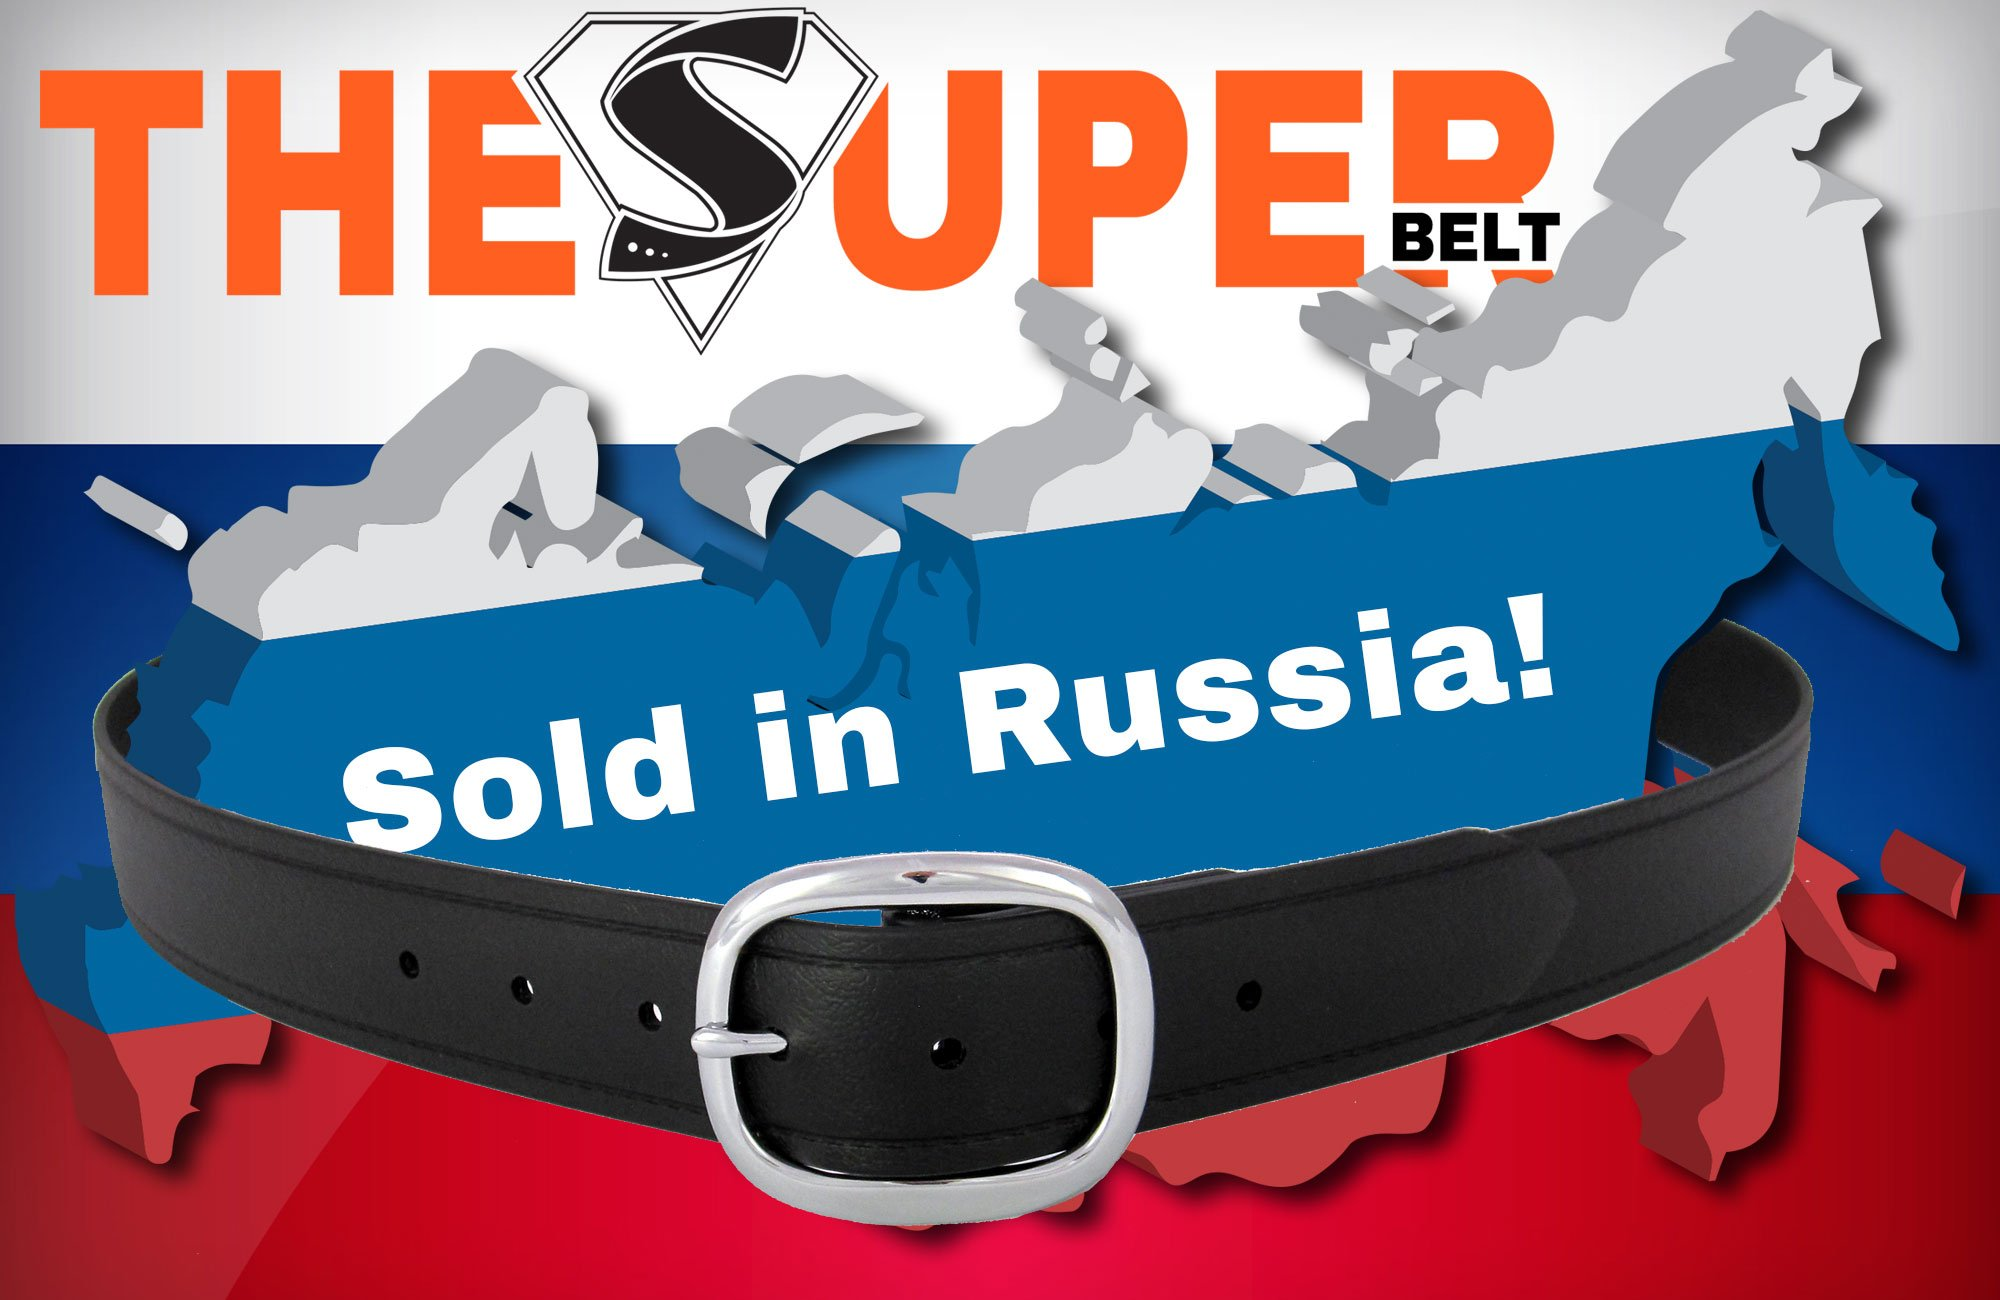 The Super Belt just Sold for the First Time in Russia (Moscow) Indestructible and Invincible Lifetime Warranty Belt Made in America to Last Forever Leather Nylon